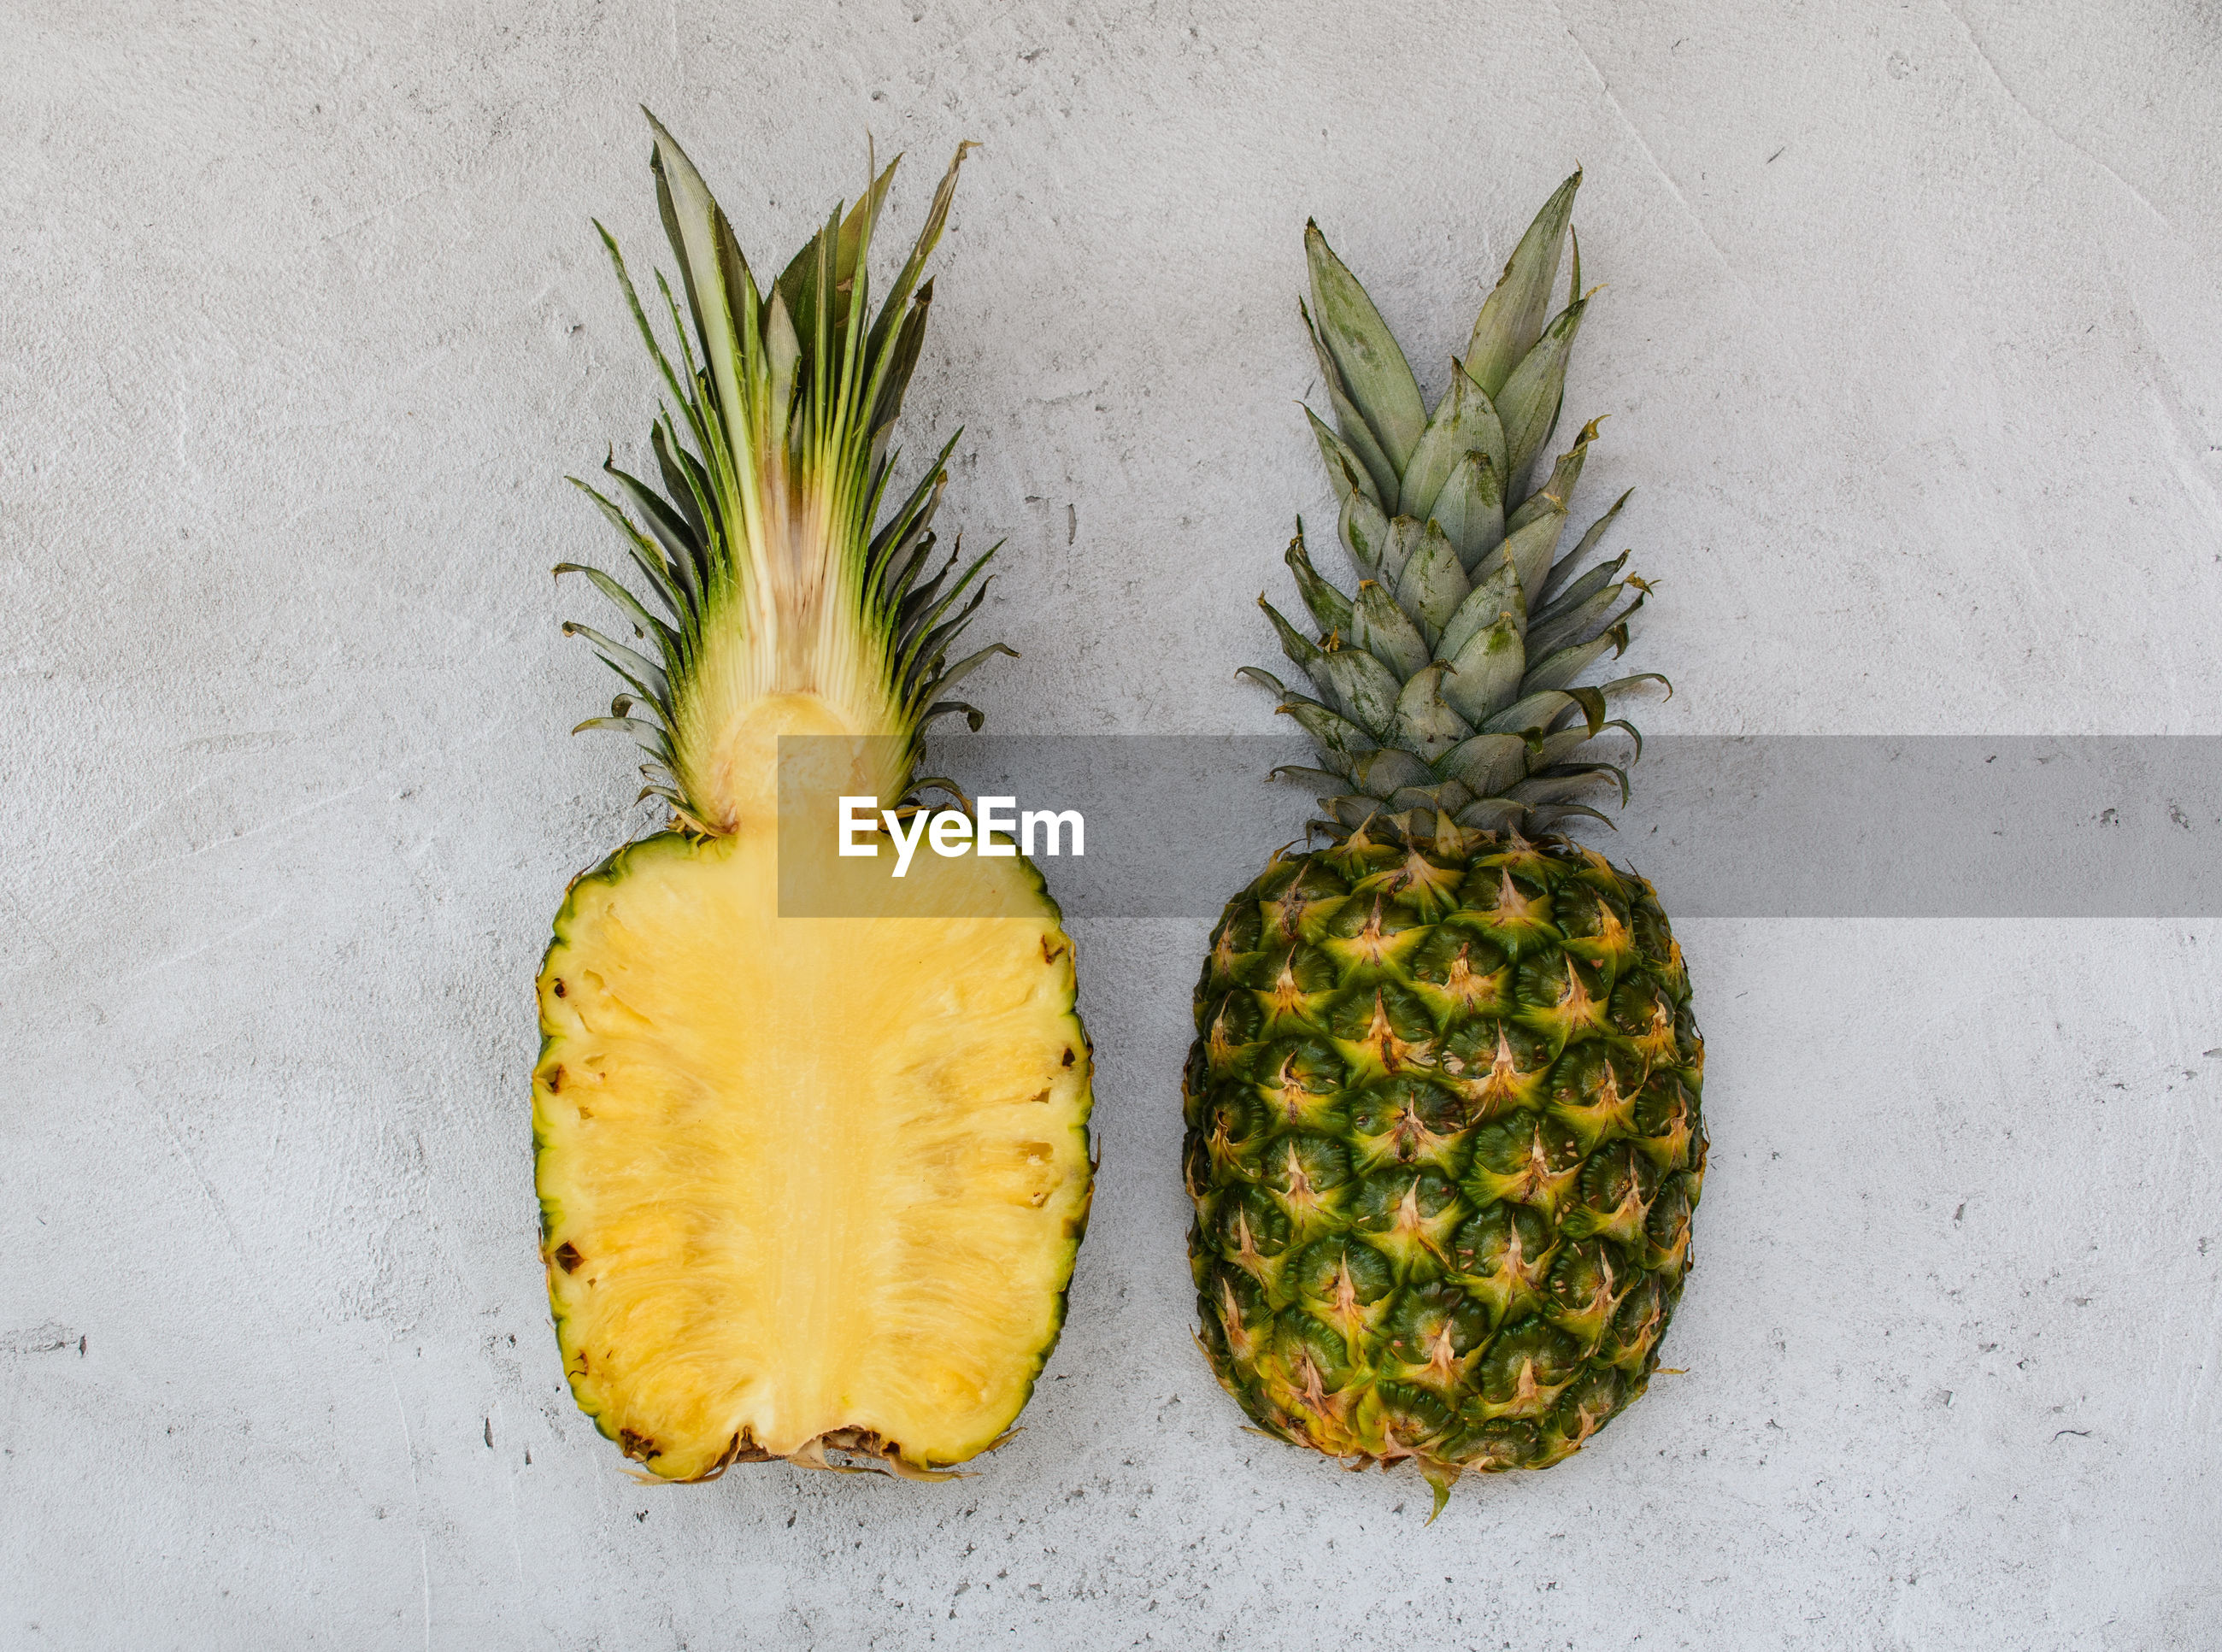 High angle view of fruits against white background, overhead, pineapple.